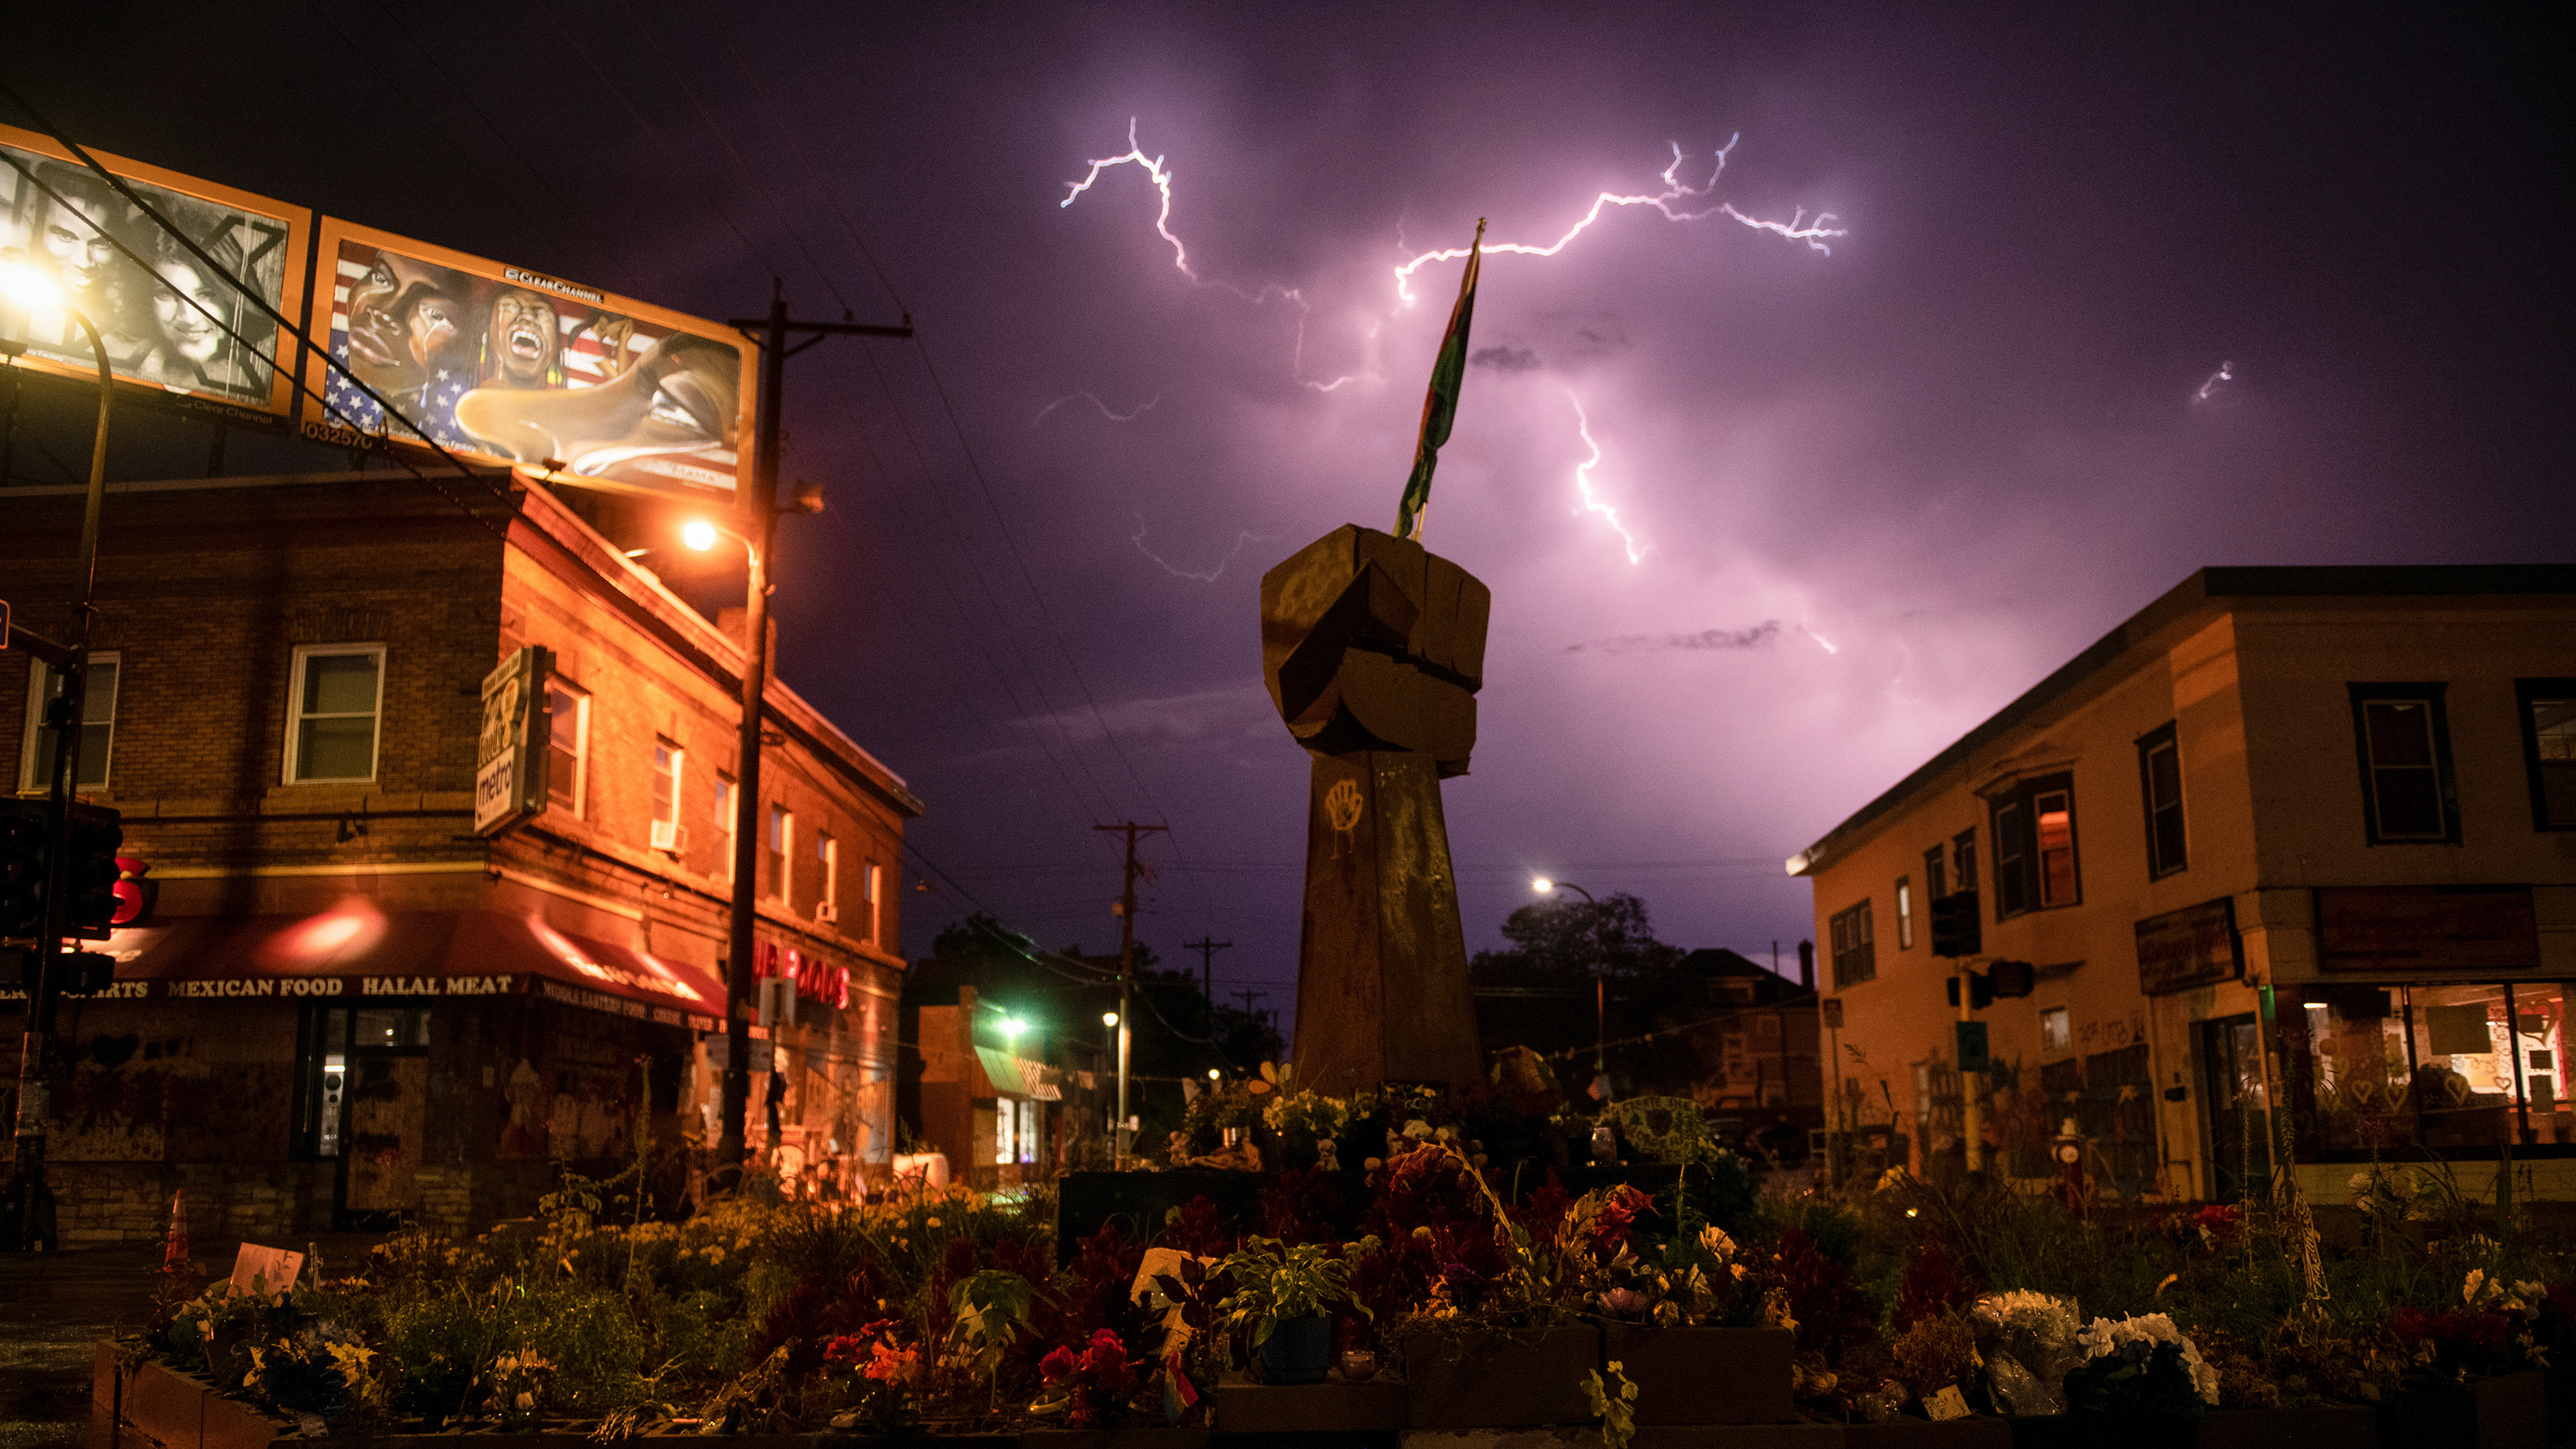 The photo shows the street where the memorial is located at night with a long-exposure photograph capturing a remarkable flash of lightning in the sky.